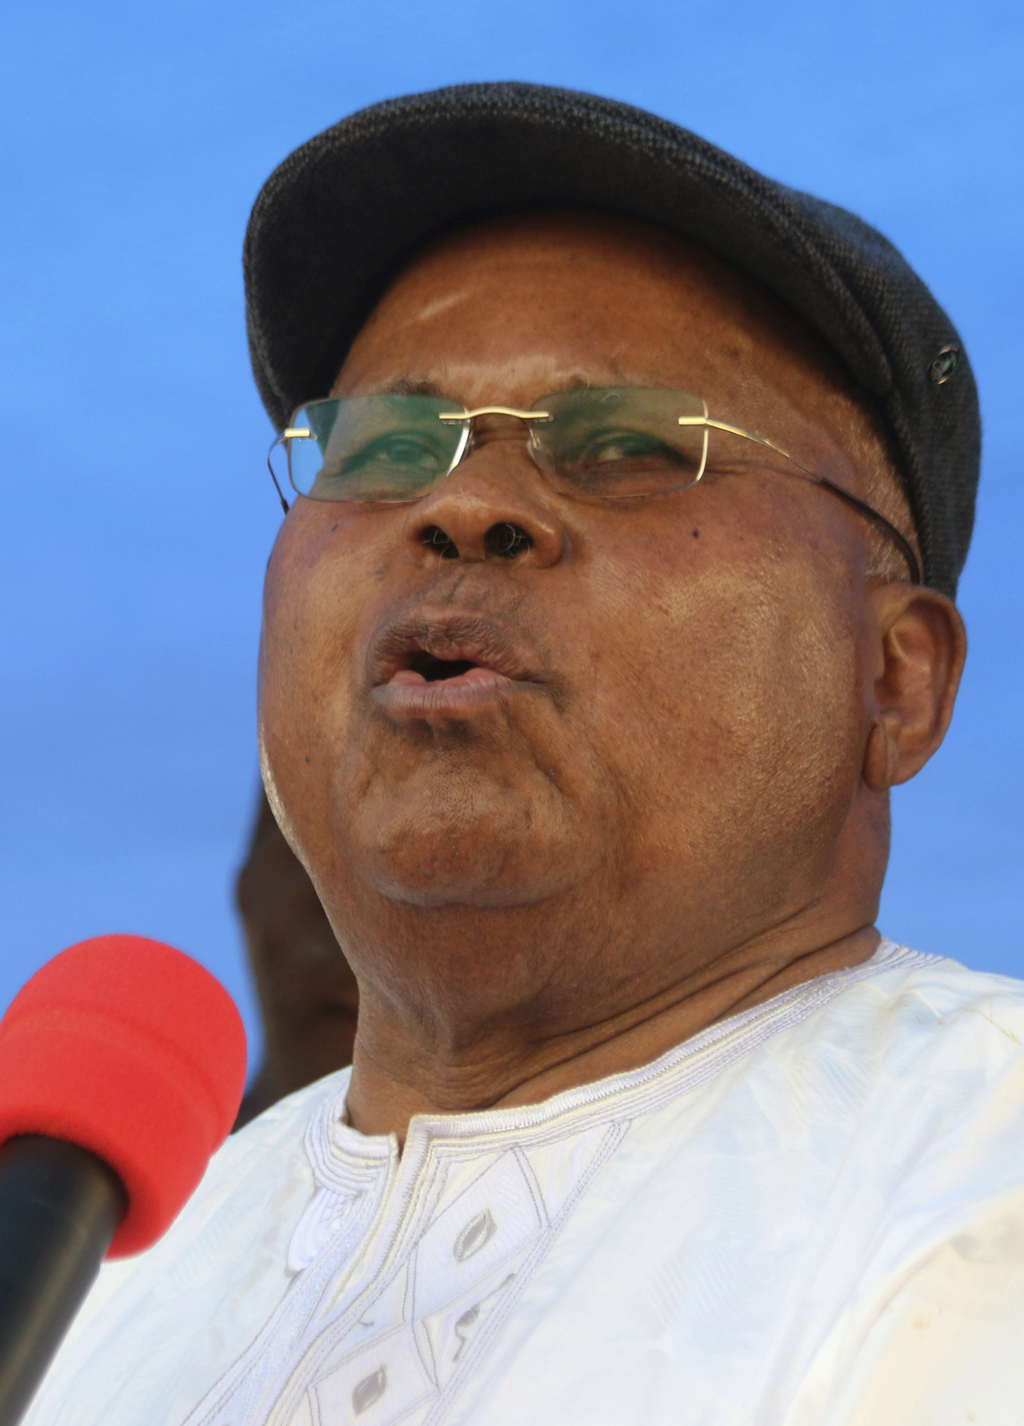 FILE - In this Wednesday, July. 31, 2016 file photo, Congo's largest opposition party leader Etienne Tshisekedi speaks during a politic...